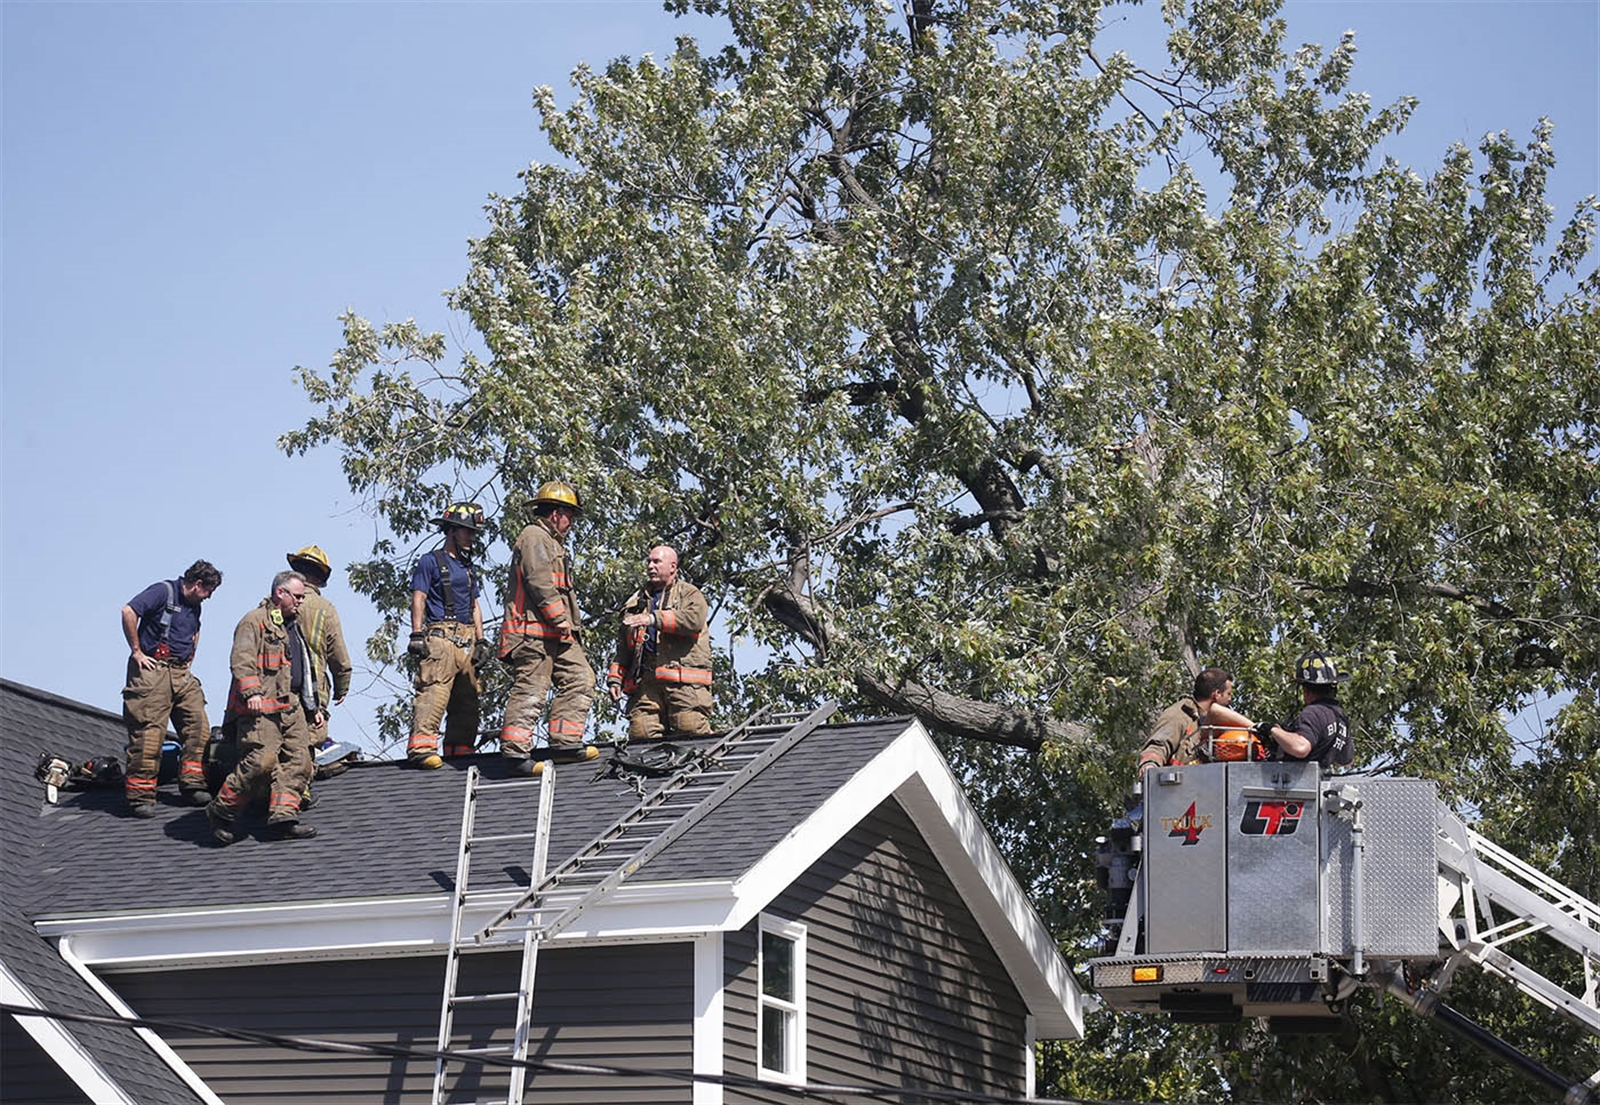 Buffalo firefighters extricate a professional tree cutter from the roof of 353 Elmwood Ave. after a large limb he was cutting fell, pinning him on the roof on Wednesday, Aug. 24, 2016.